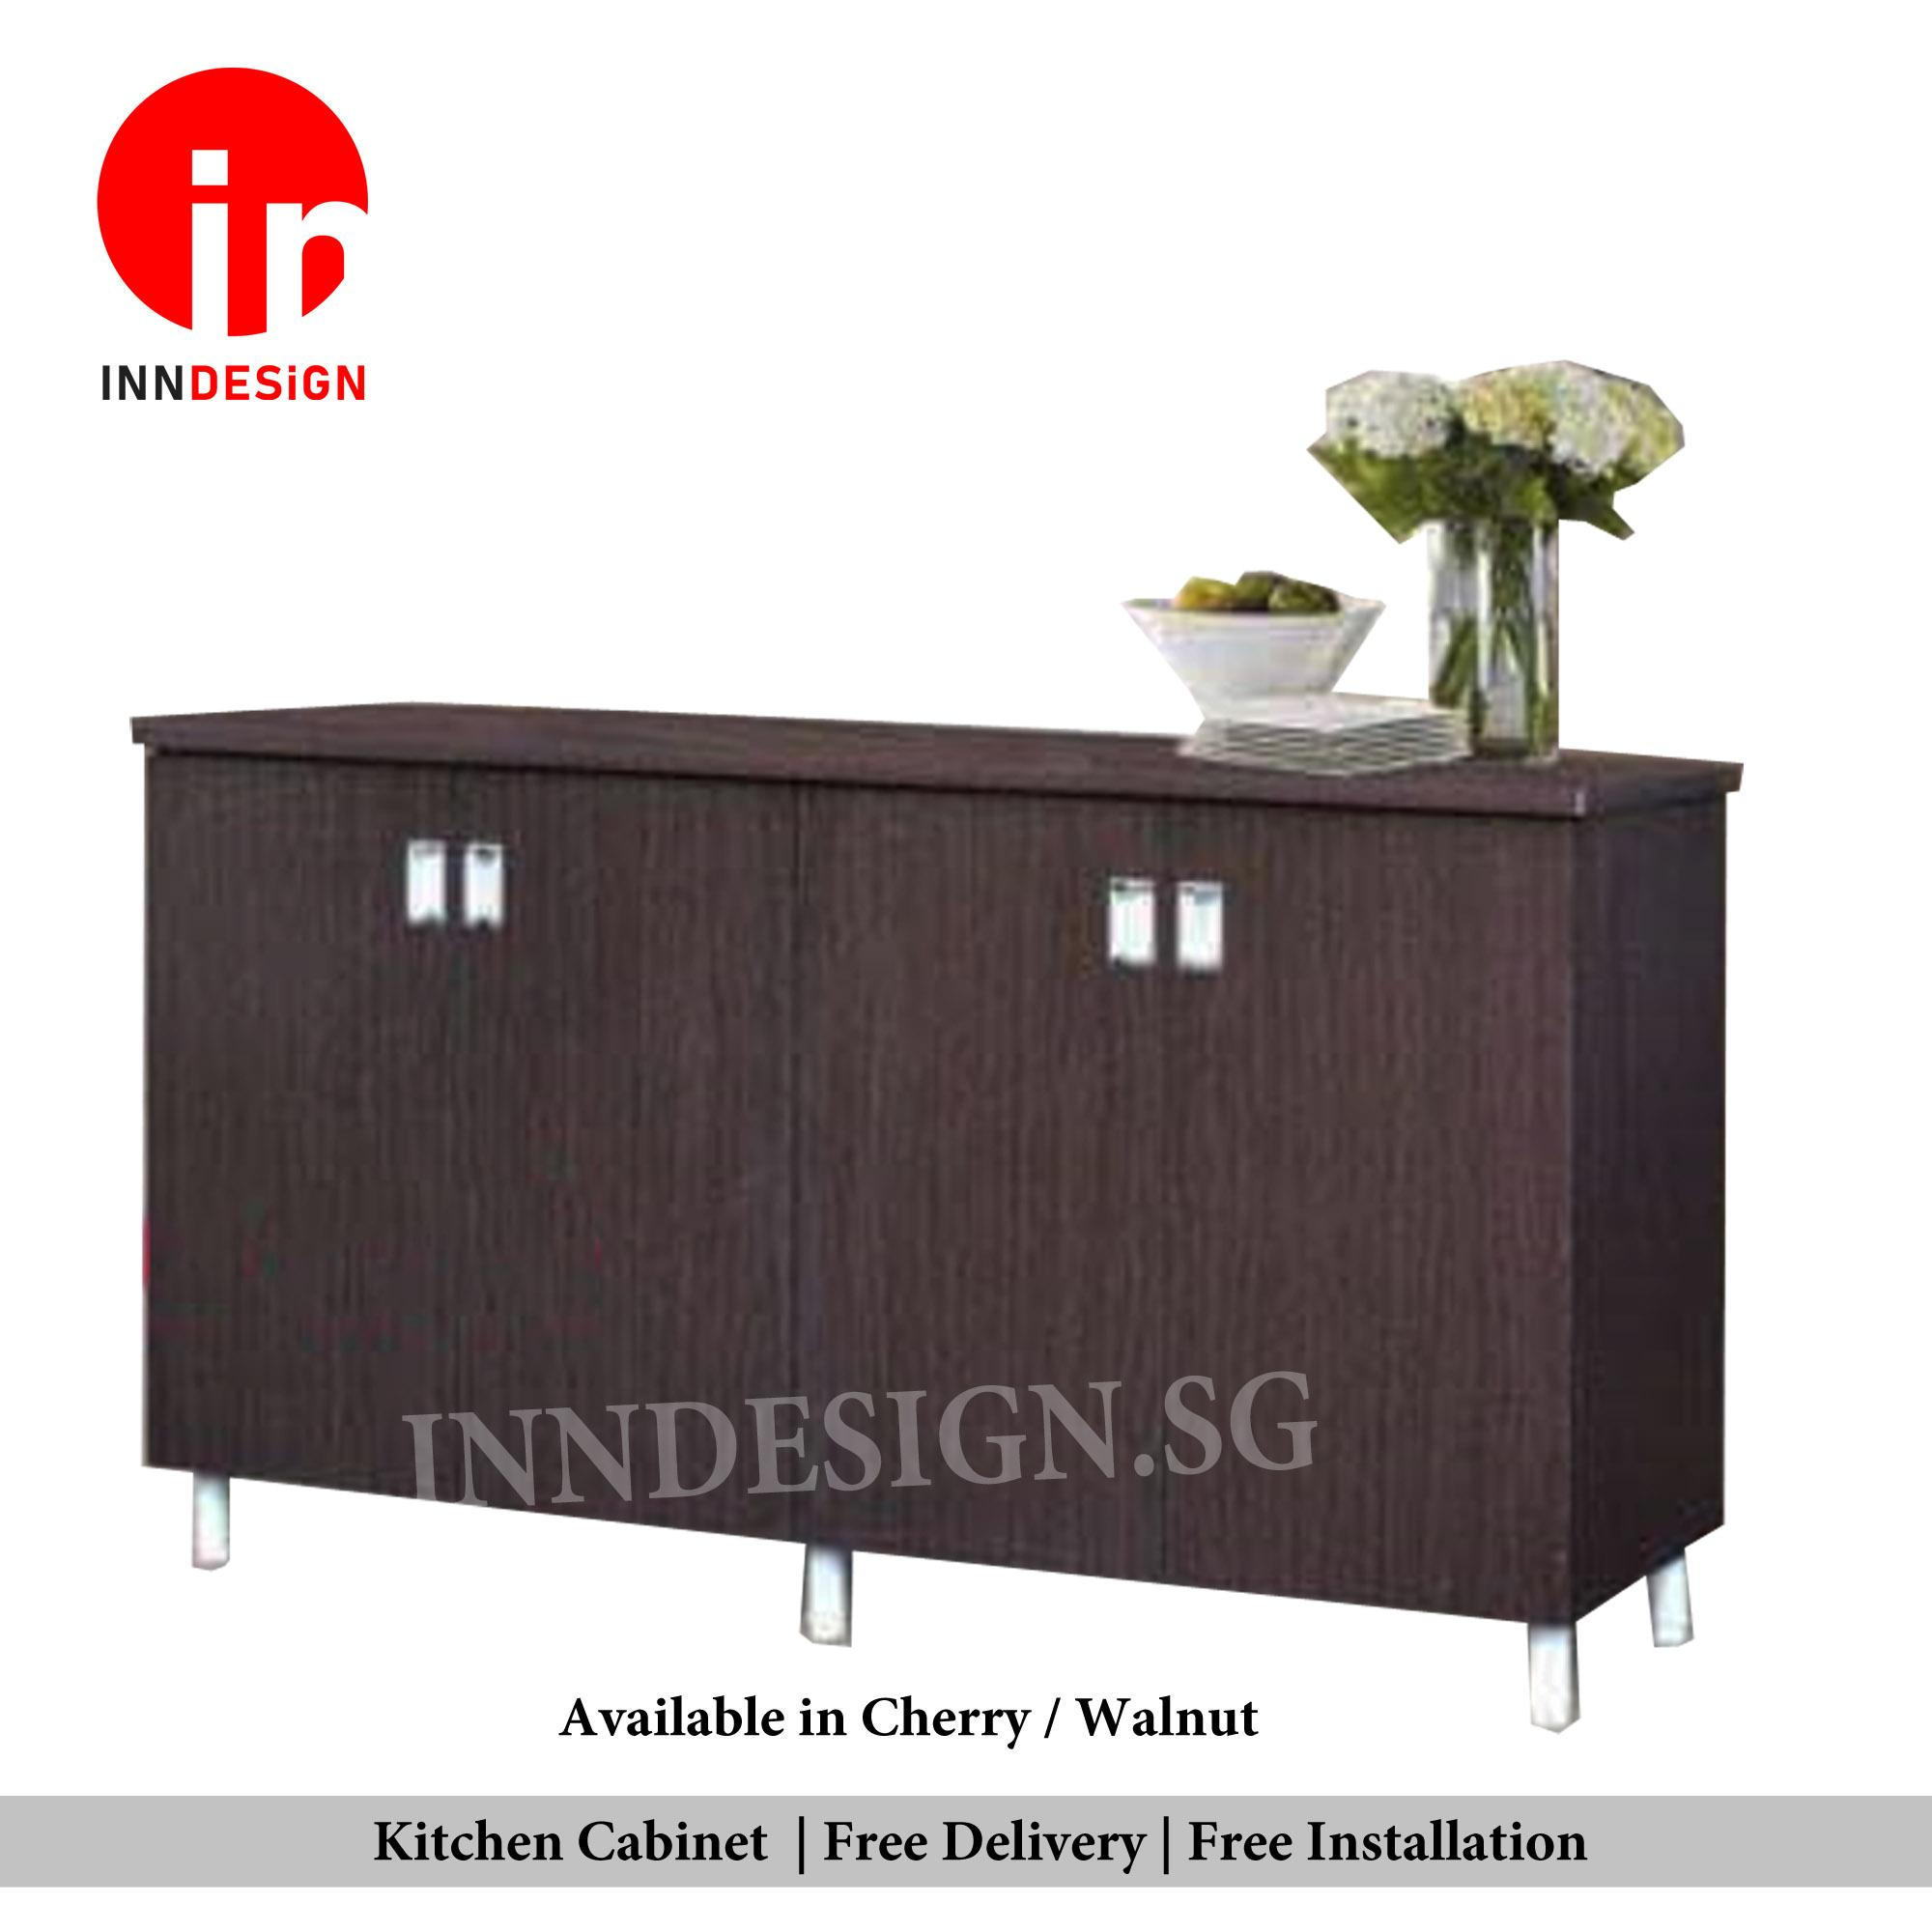 Daisyn Kitchen Cabinet (Free Delivery and Installation) (Deliver Within 1 Working Day)